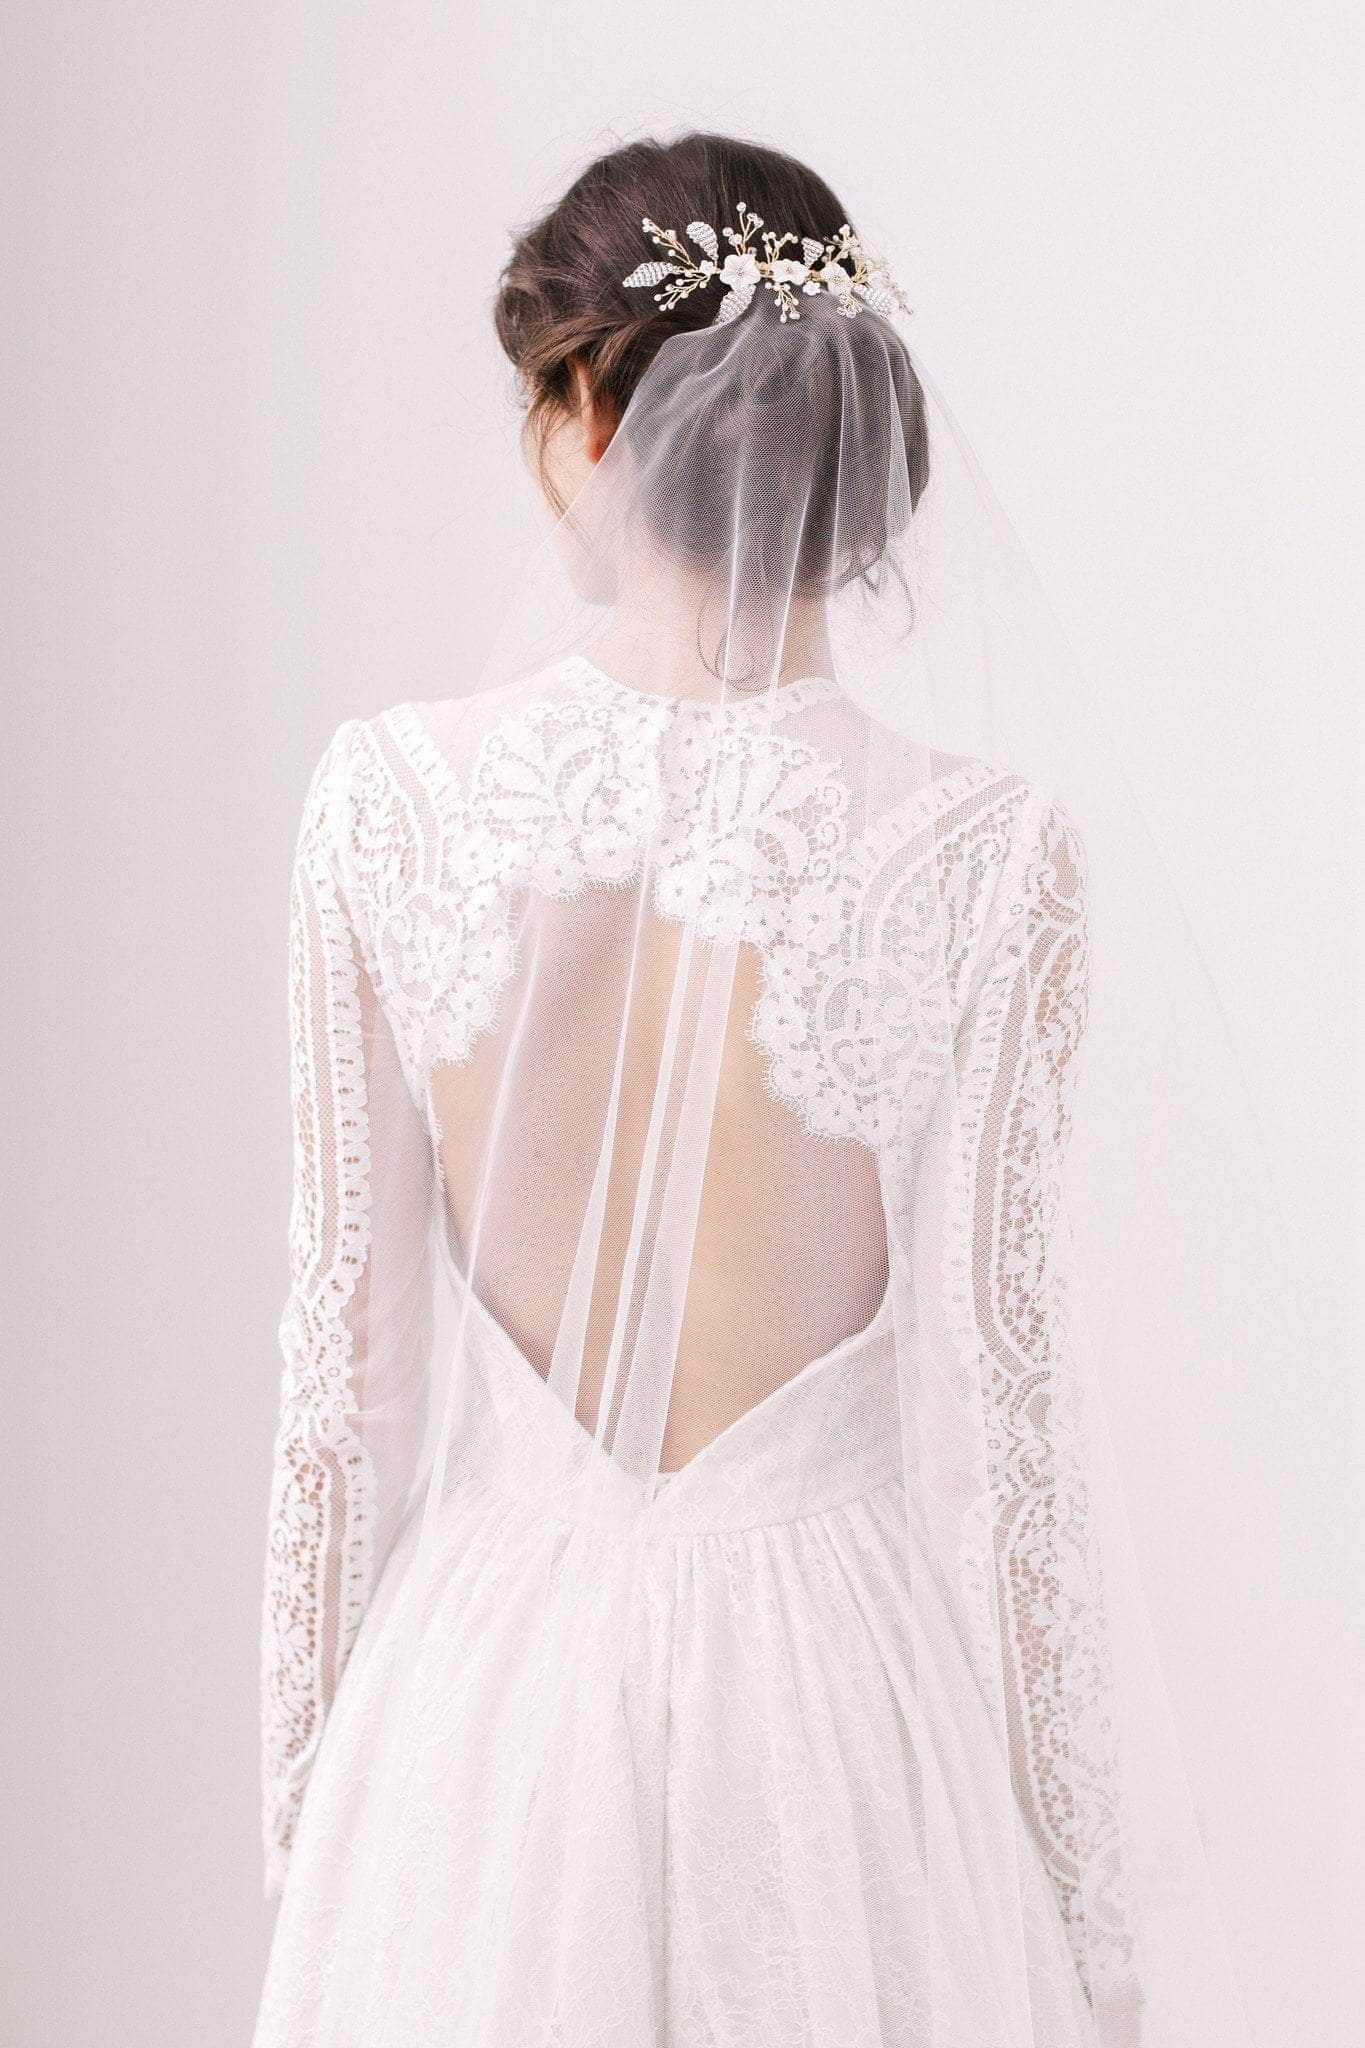 Barely there wedding veil - 'Skylar' - Britten Weddings